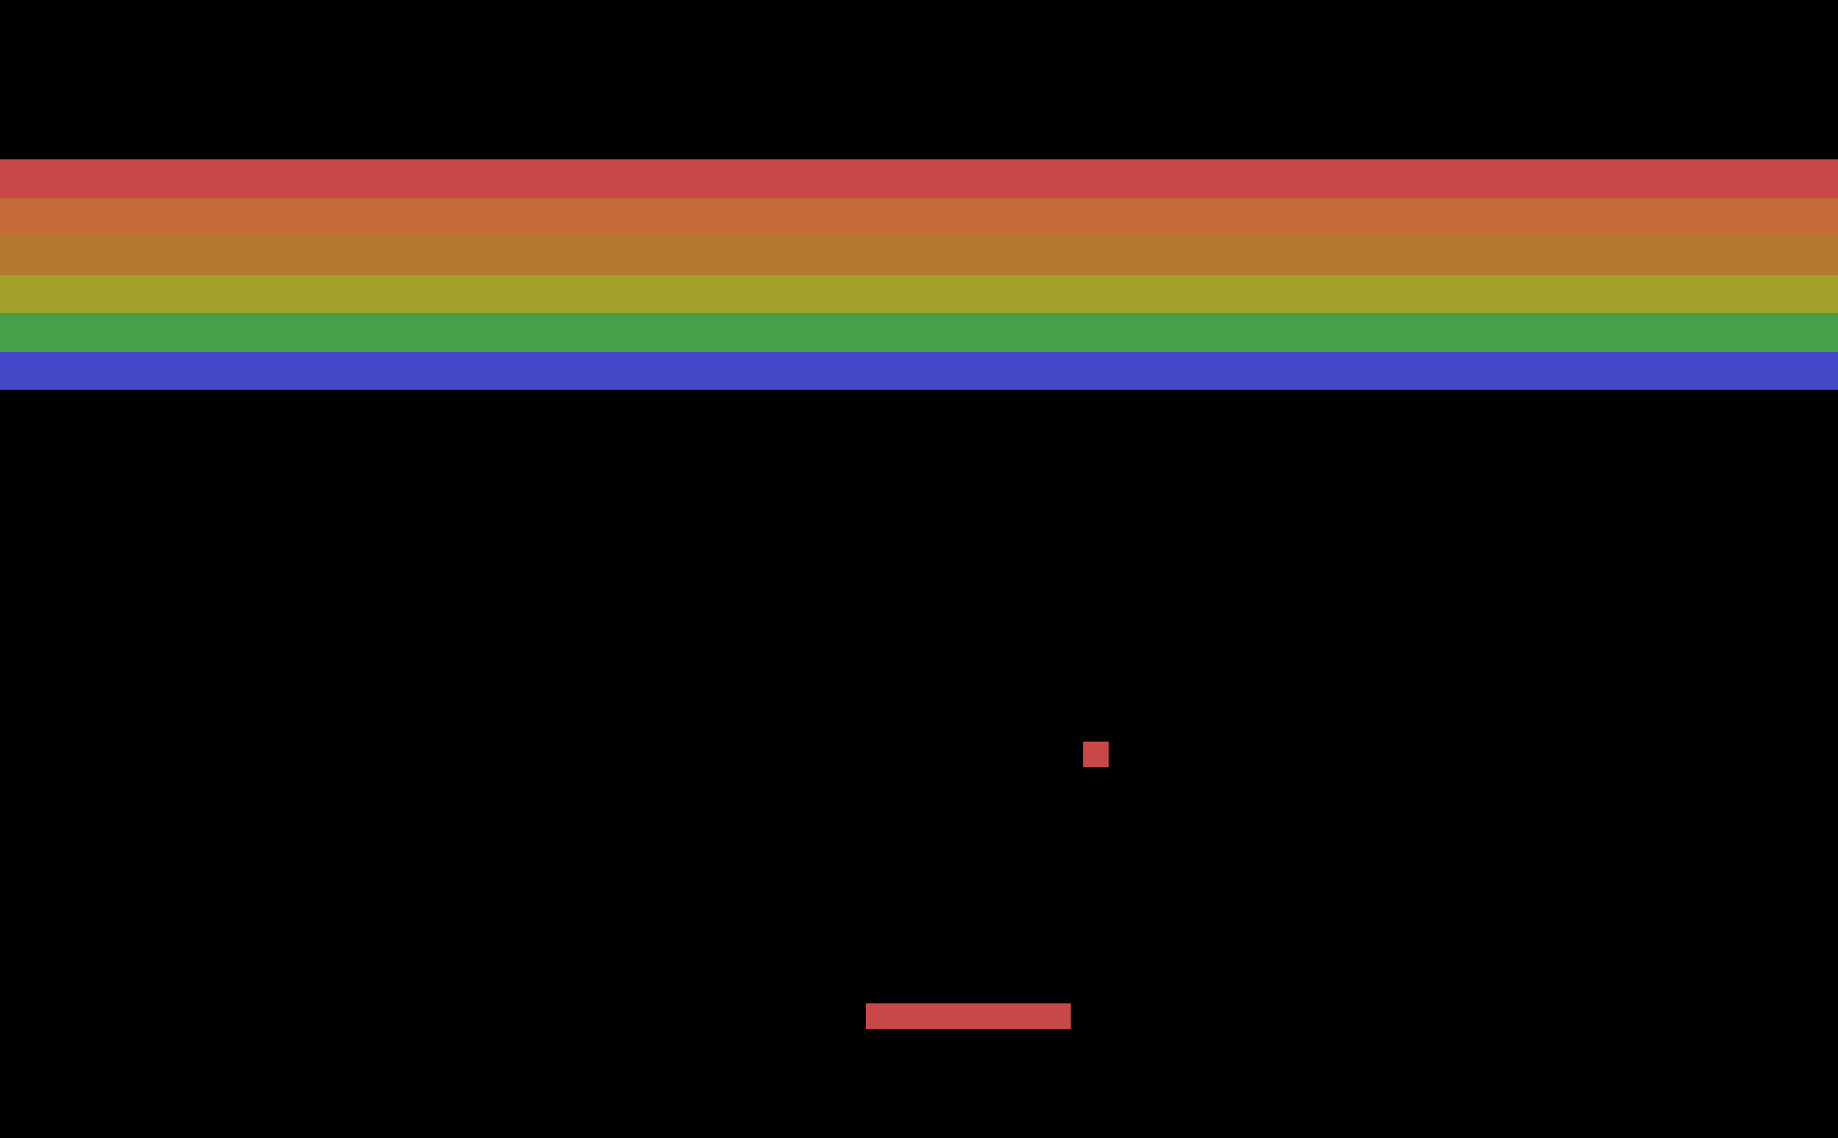 Beat Atari with Deep Reinforcement Learning! (Part 1: DQN)